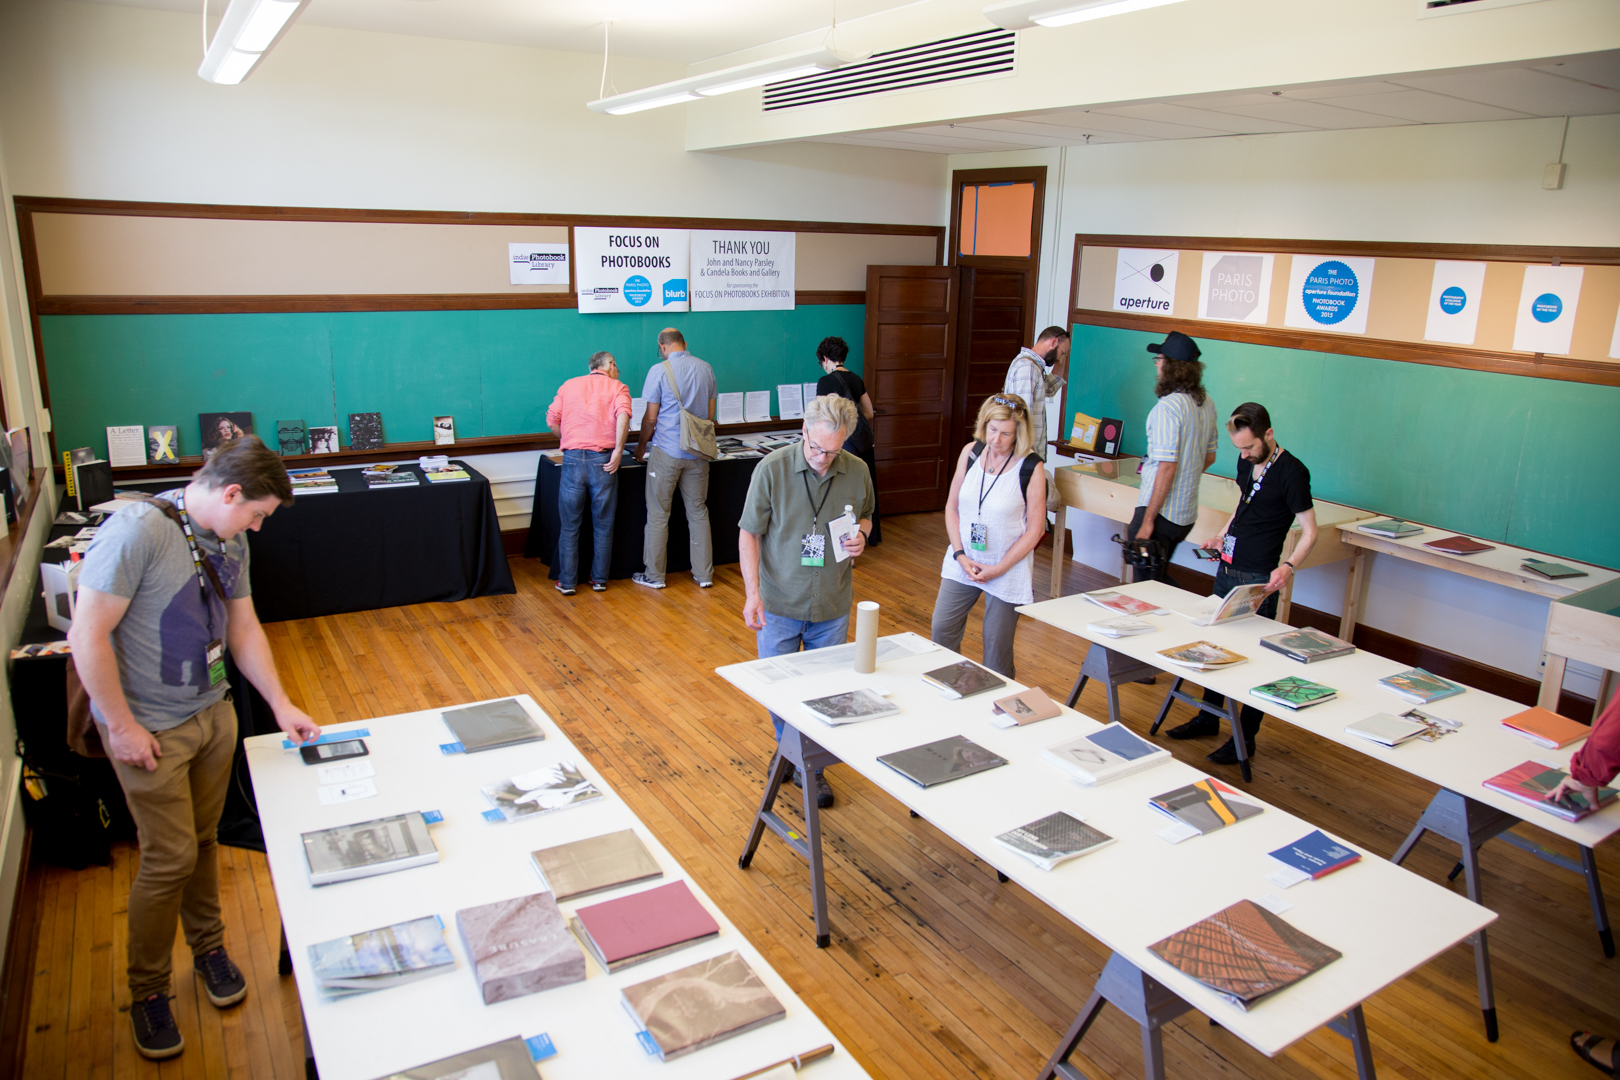 Focus on Photobooks exhibit at the Jefferson School African American Heritage Center.  Photo © Brian Lewis